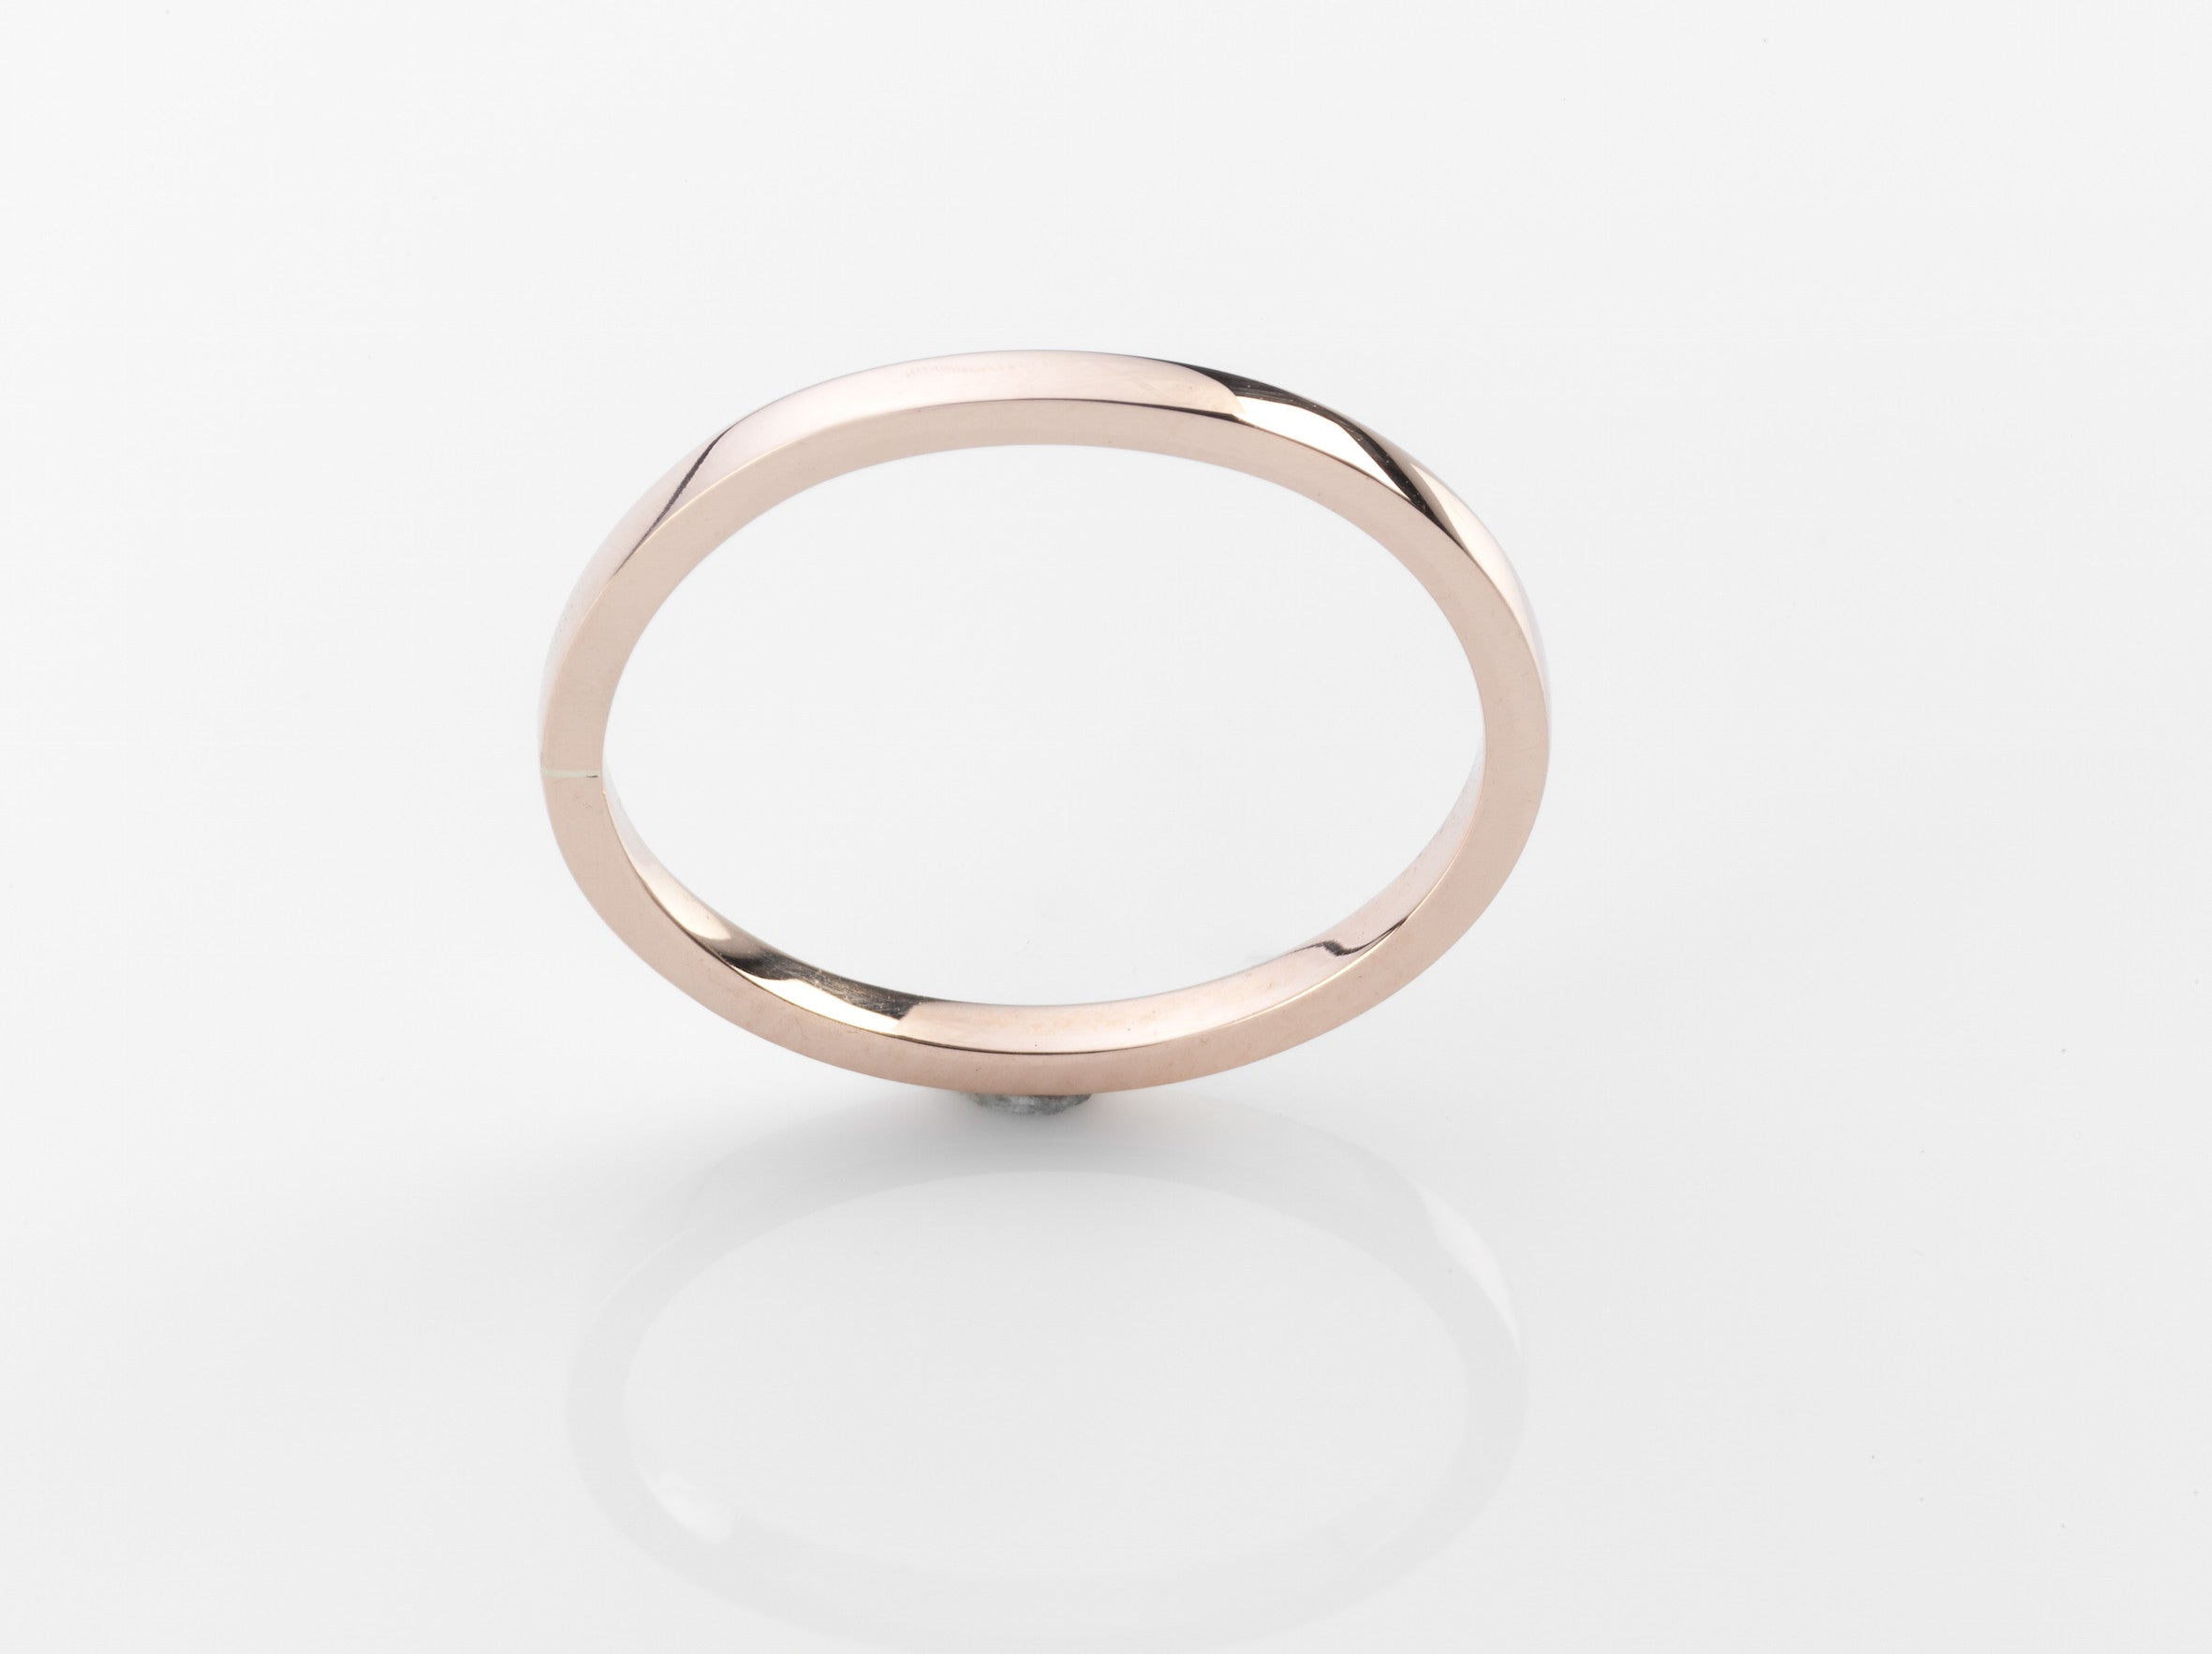 Square stacker ring